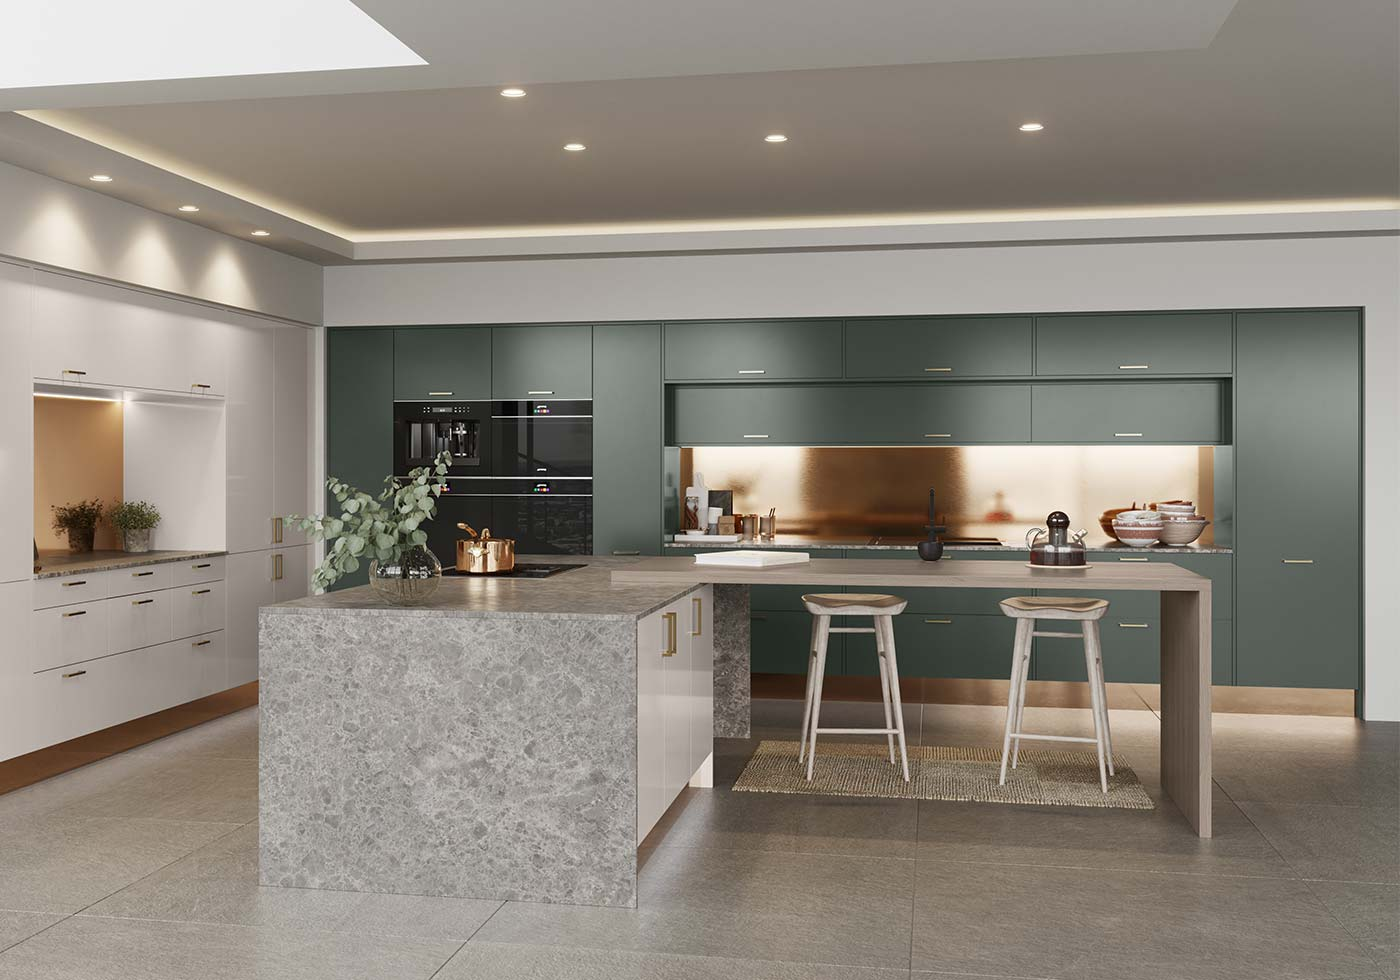 Green modern kitchen with copper accents